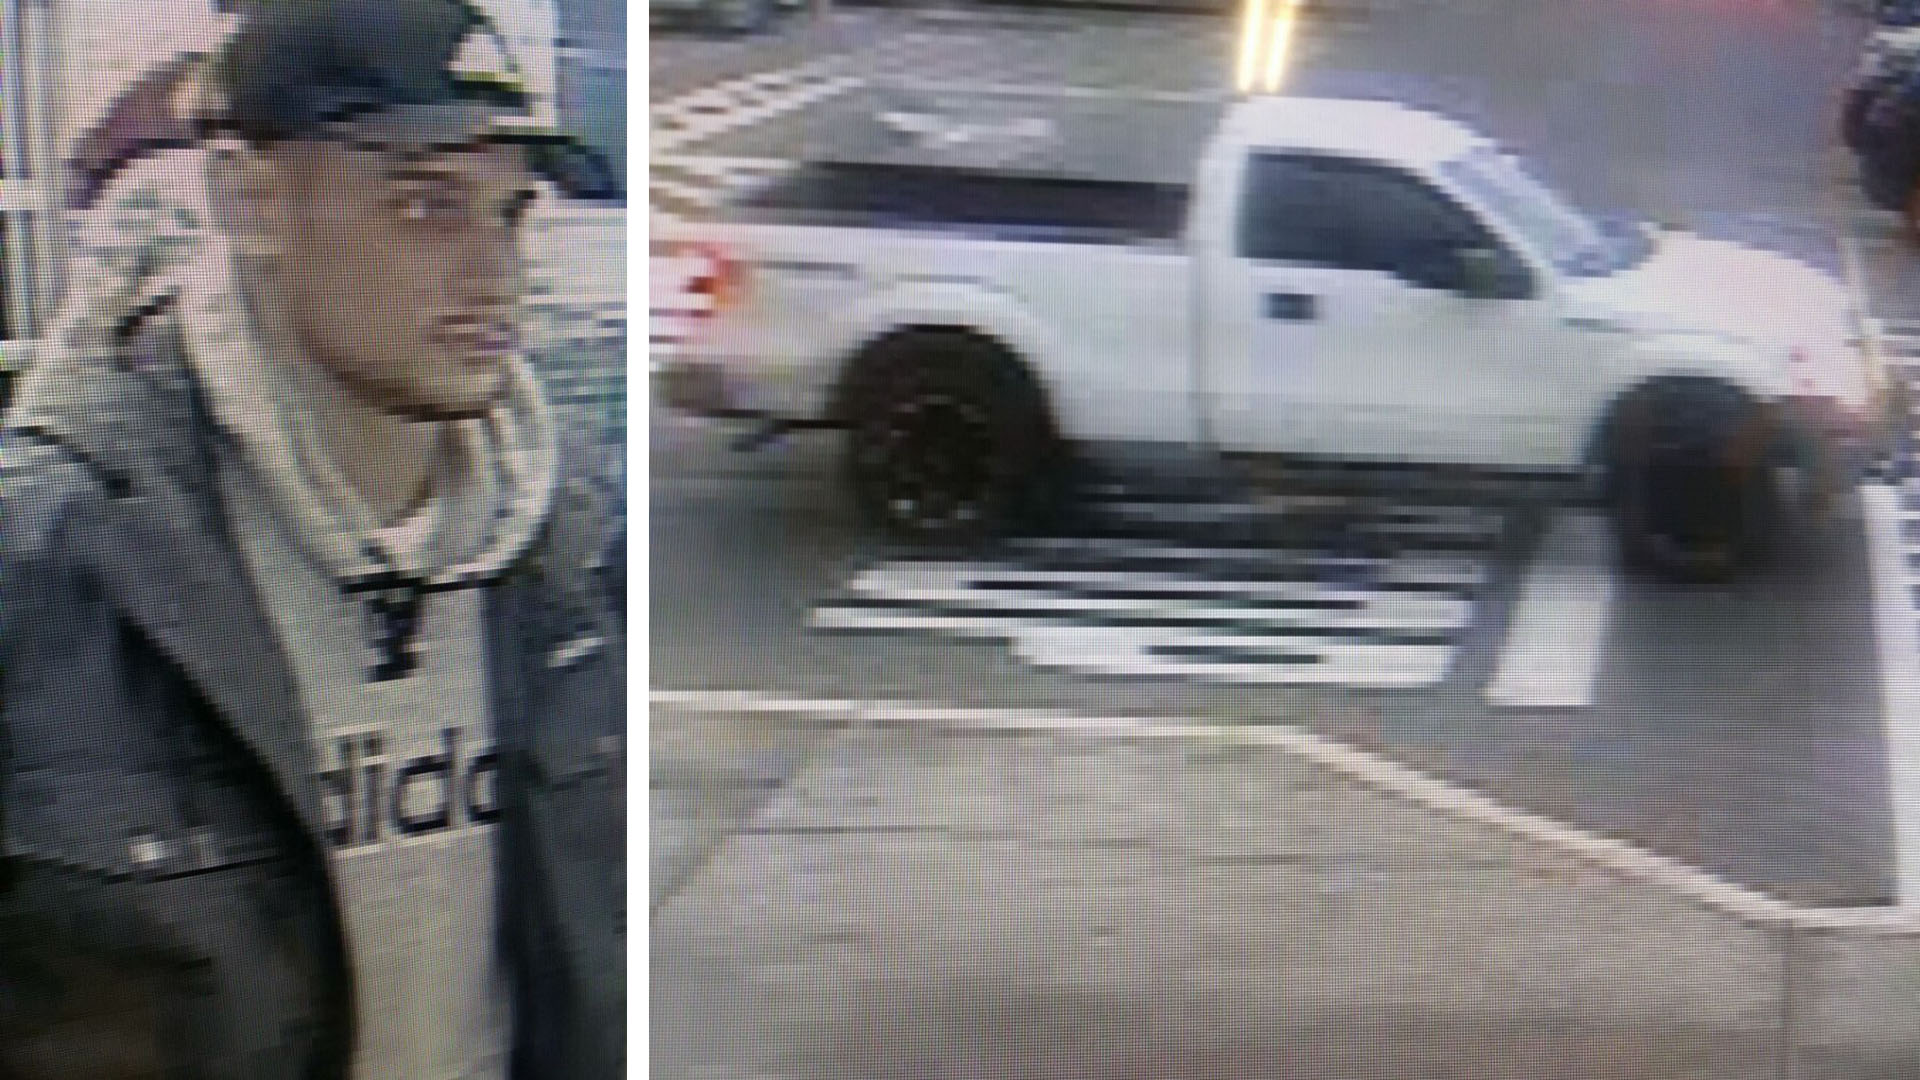 Franklin police searching for suspected shoplifter